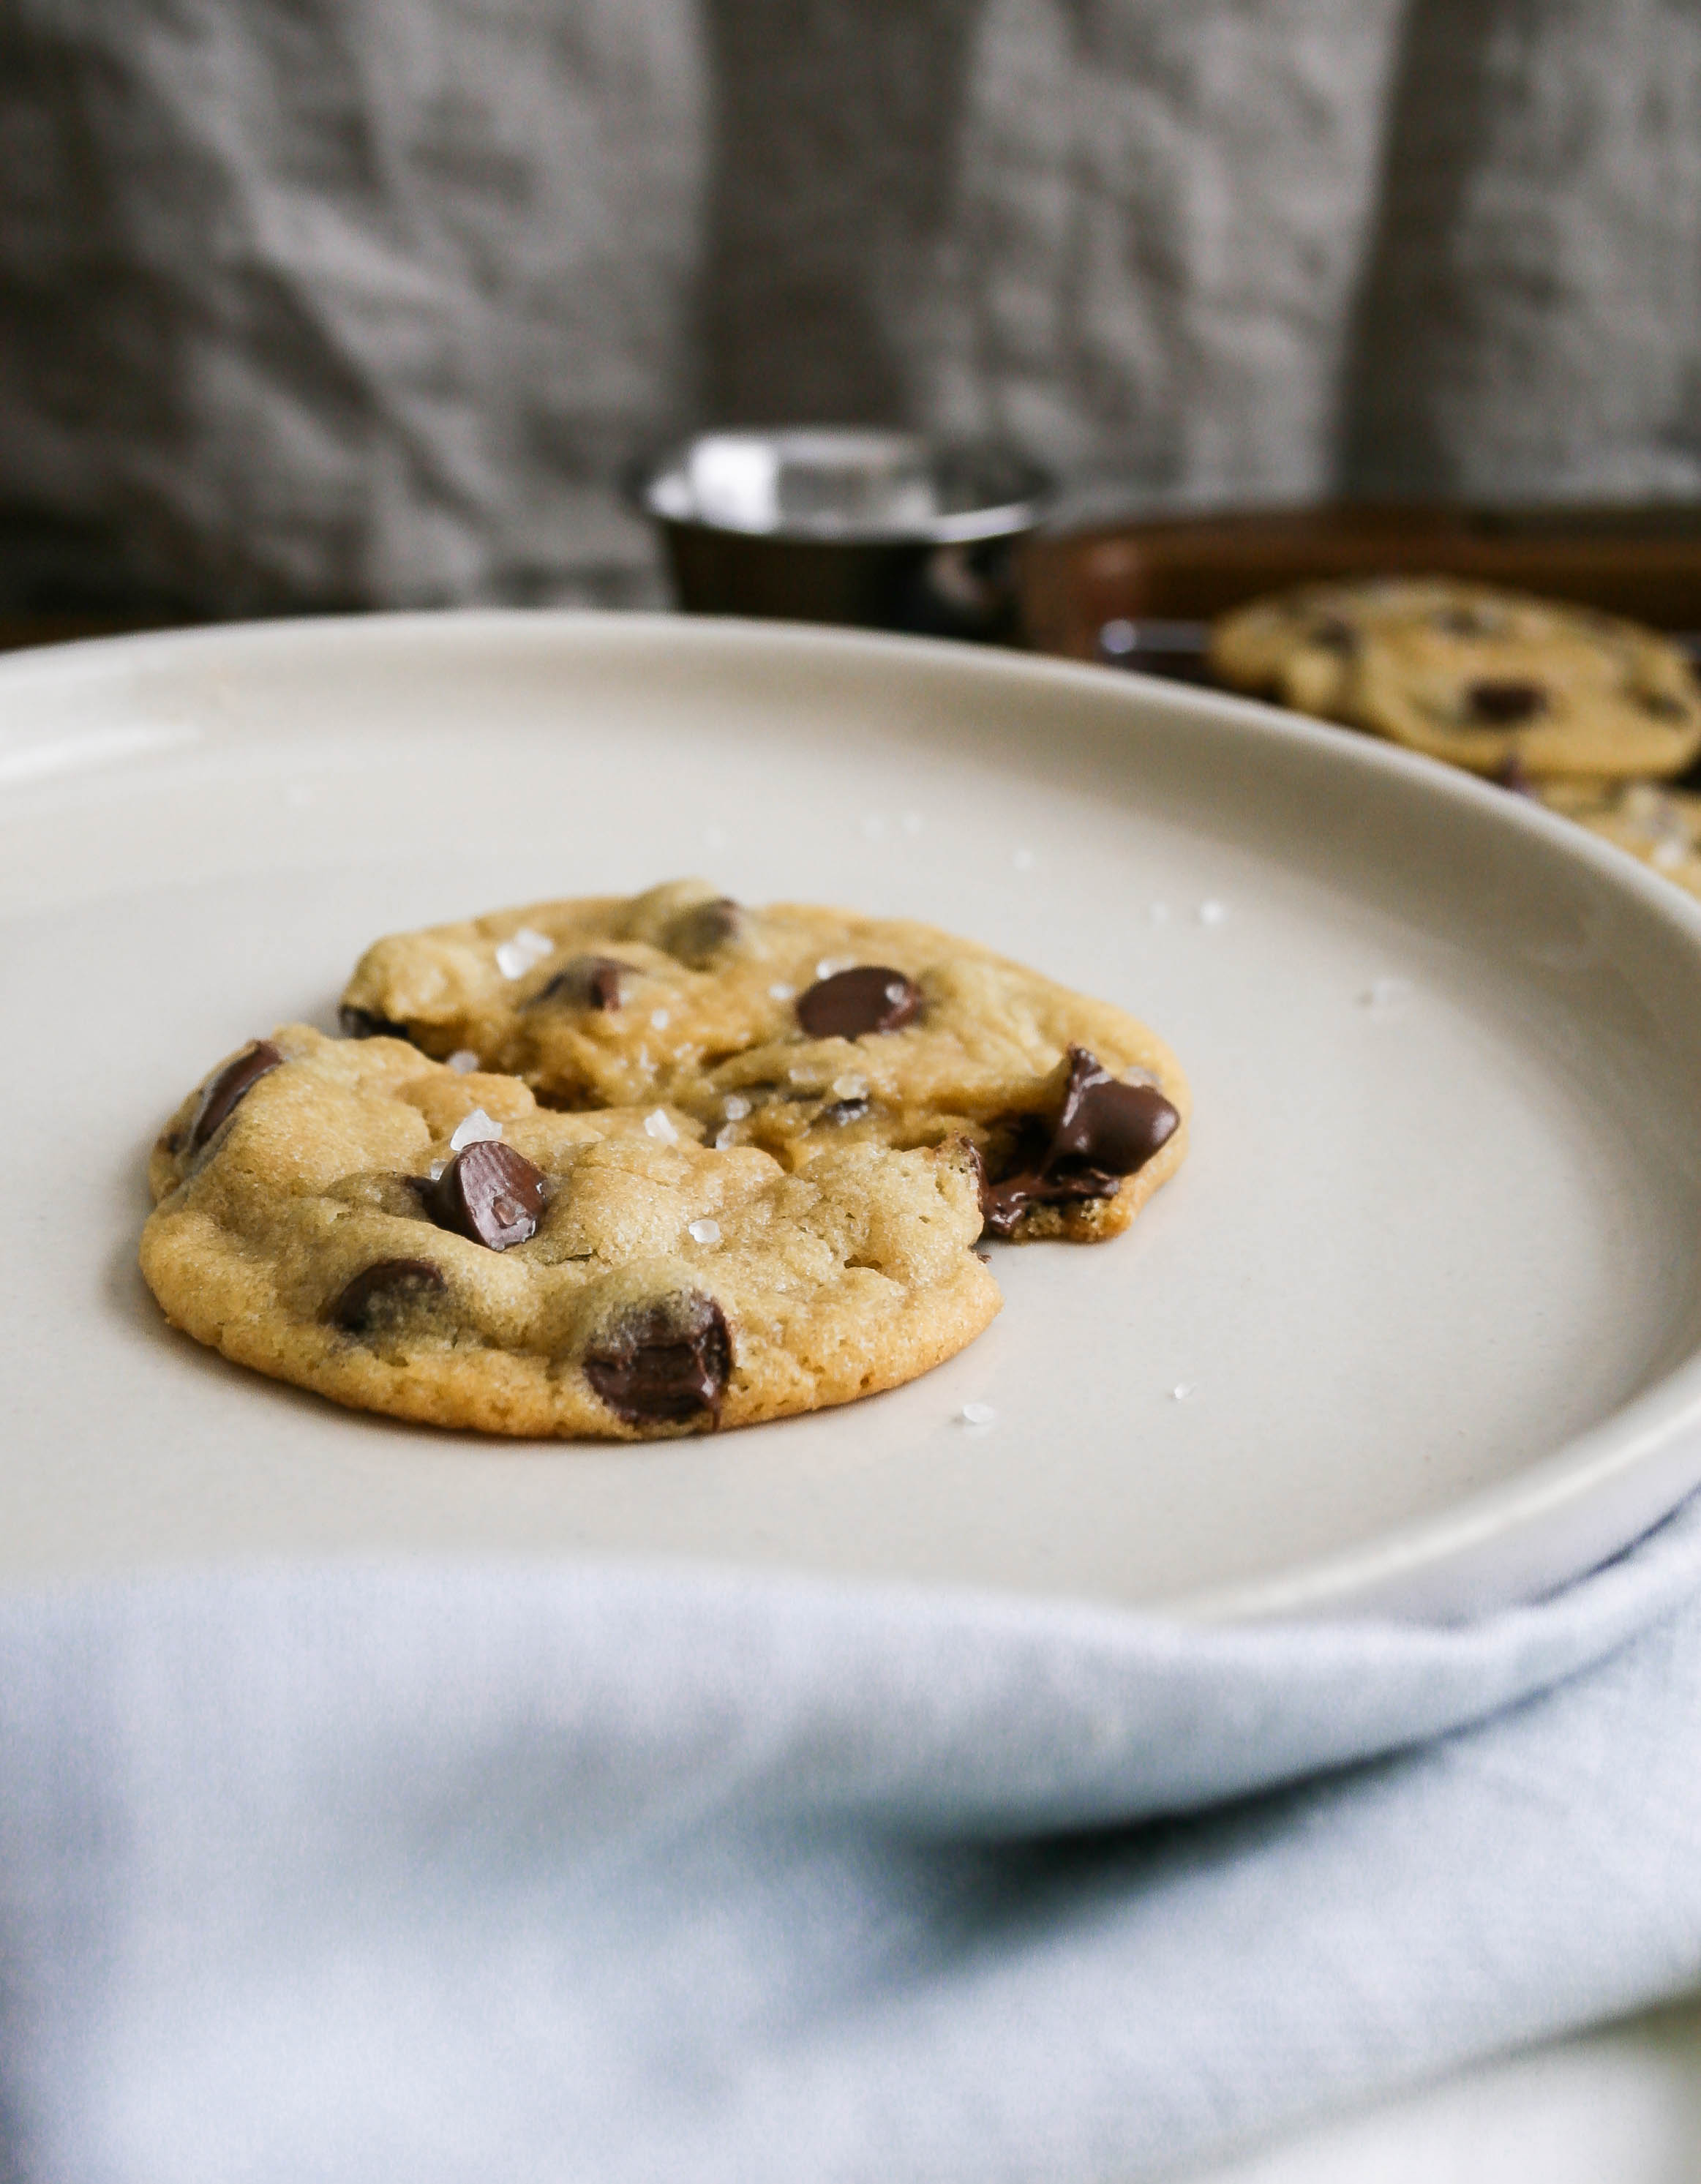 warm, gooey, classic chocolate chip cookies will melt in your mouth and warm your entire being. classic pantry staples, pure vanilla extract, and a touch of pure maple syrup bring a new depth to one of our childhood favorites. classic chocolate chip cookies | a flavor journal food blog